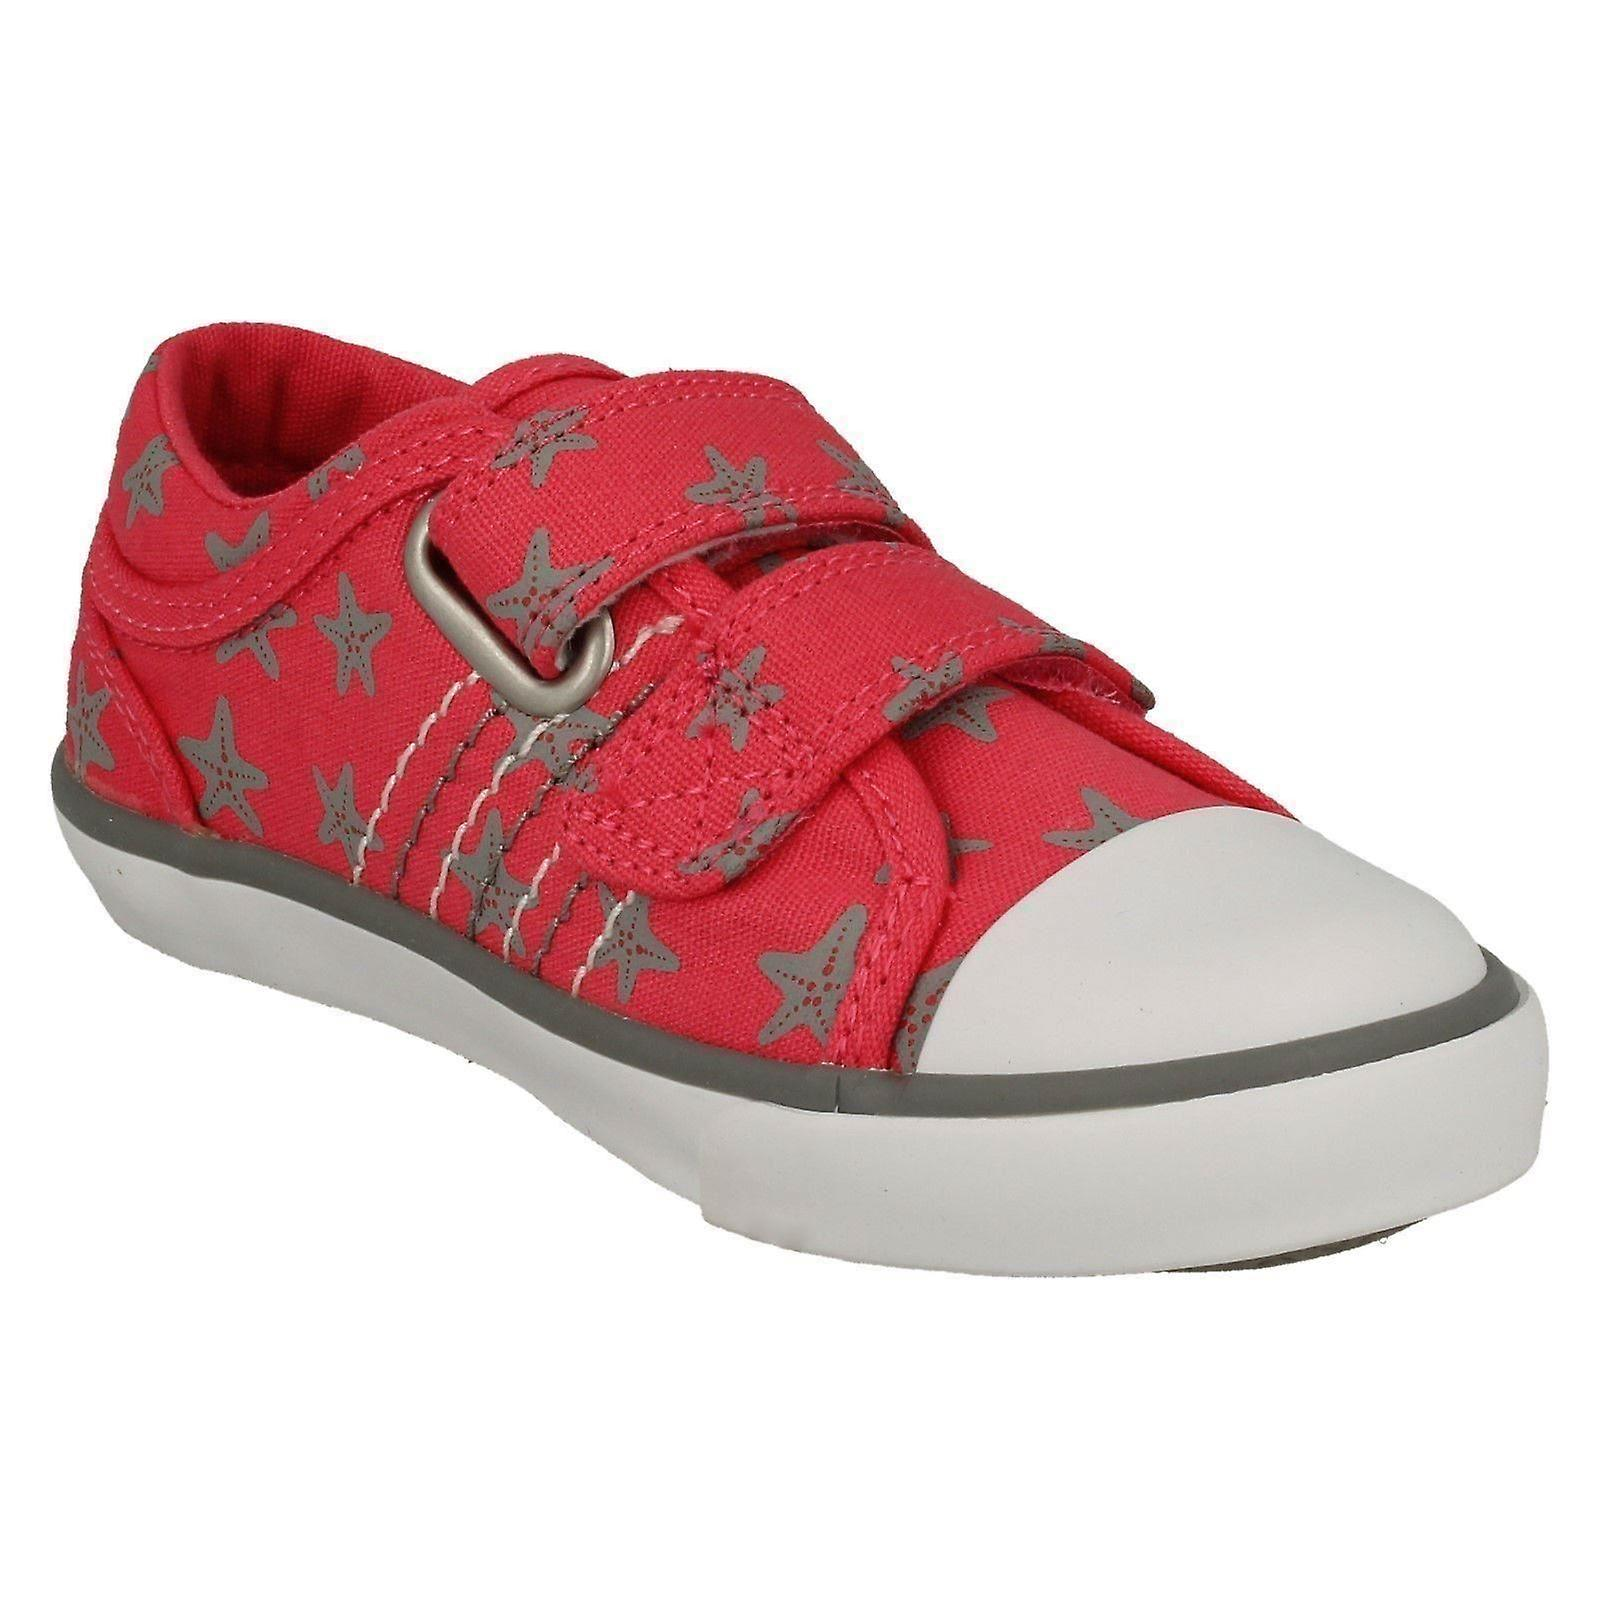 Childrens Boys/Girls Startrite Casual Shoes Zip - Pink Canvas - UK Size 9F - EU Size 27 - US Size 10